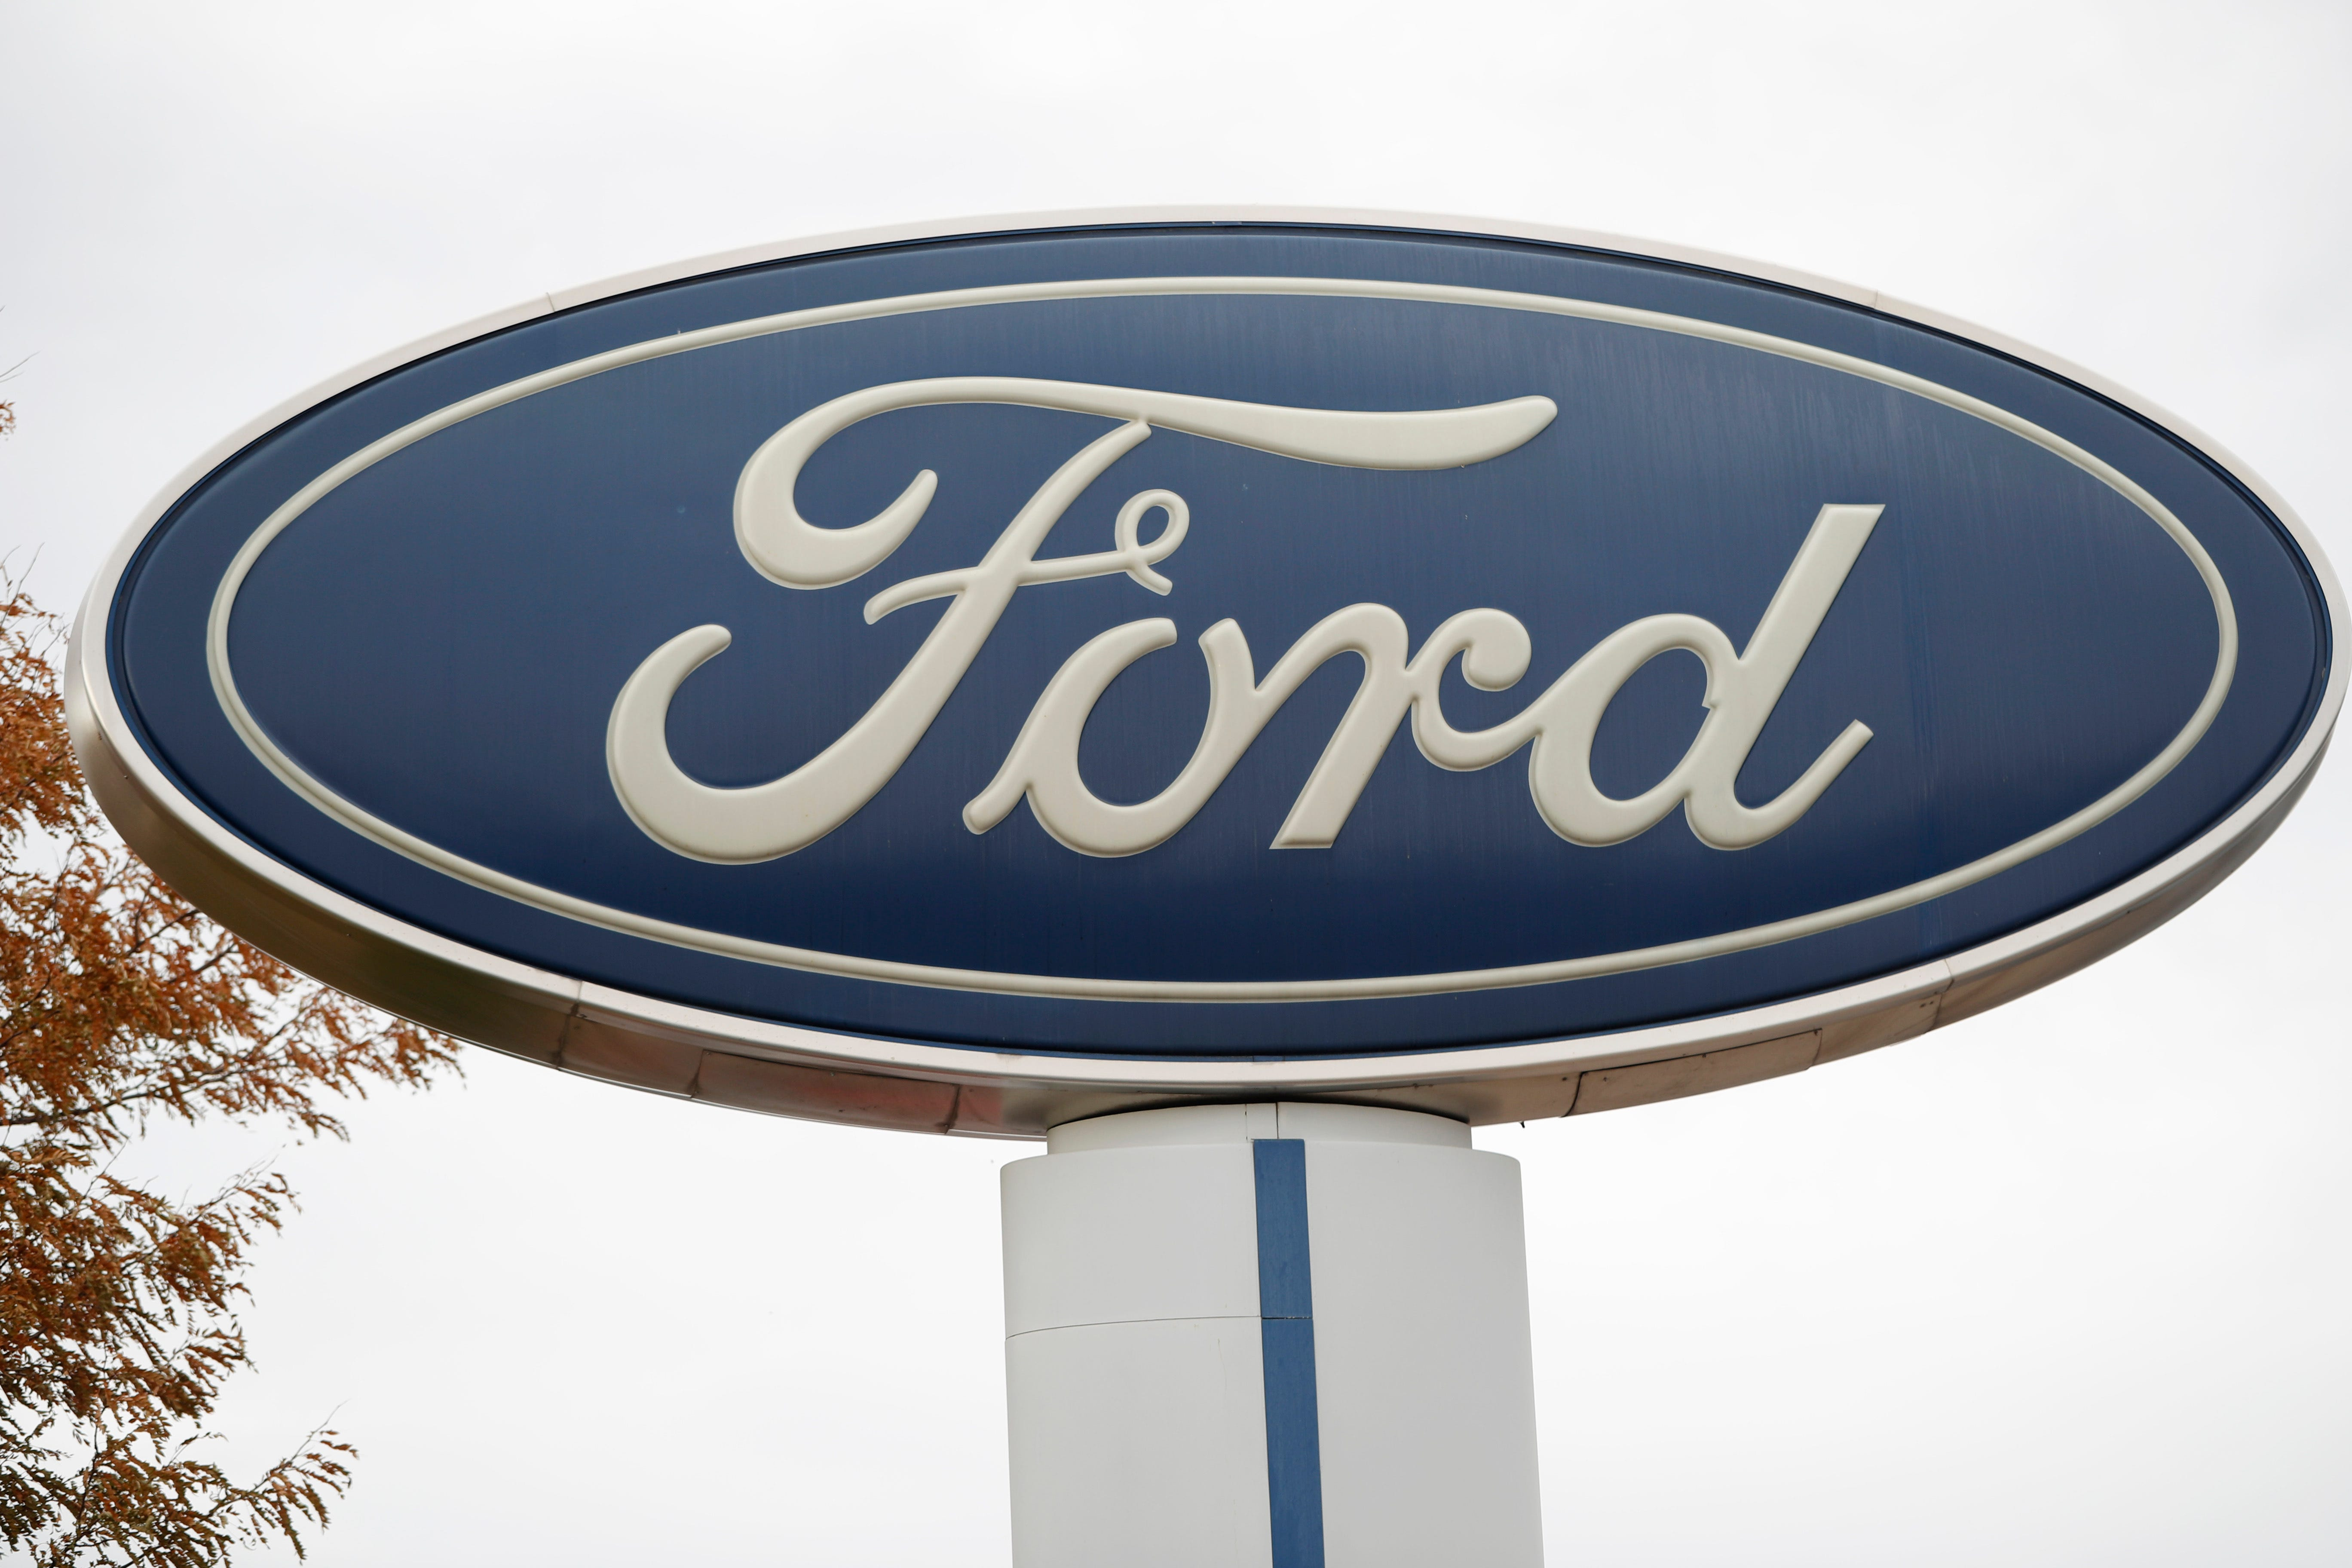 Ford Christmas Bonus Retired Payout Date 2020 UAW Ford workers review $60,000 buyout offers to leave